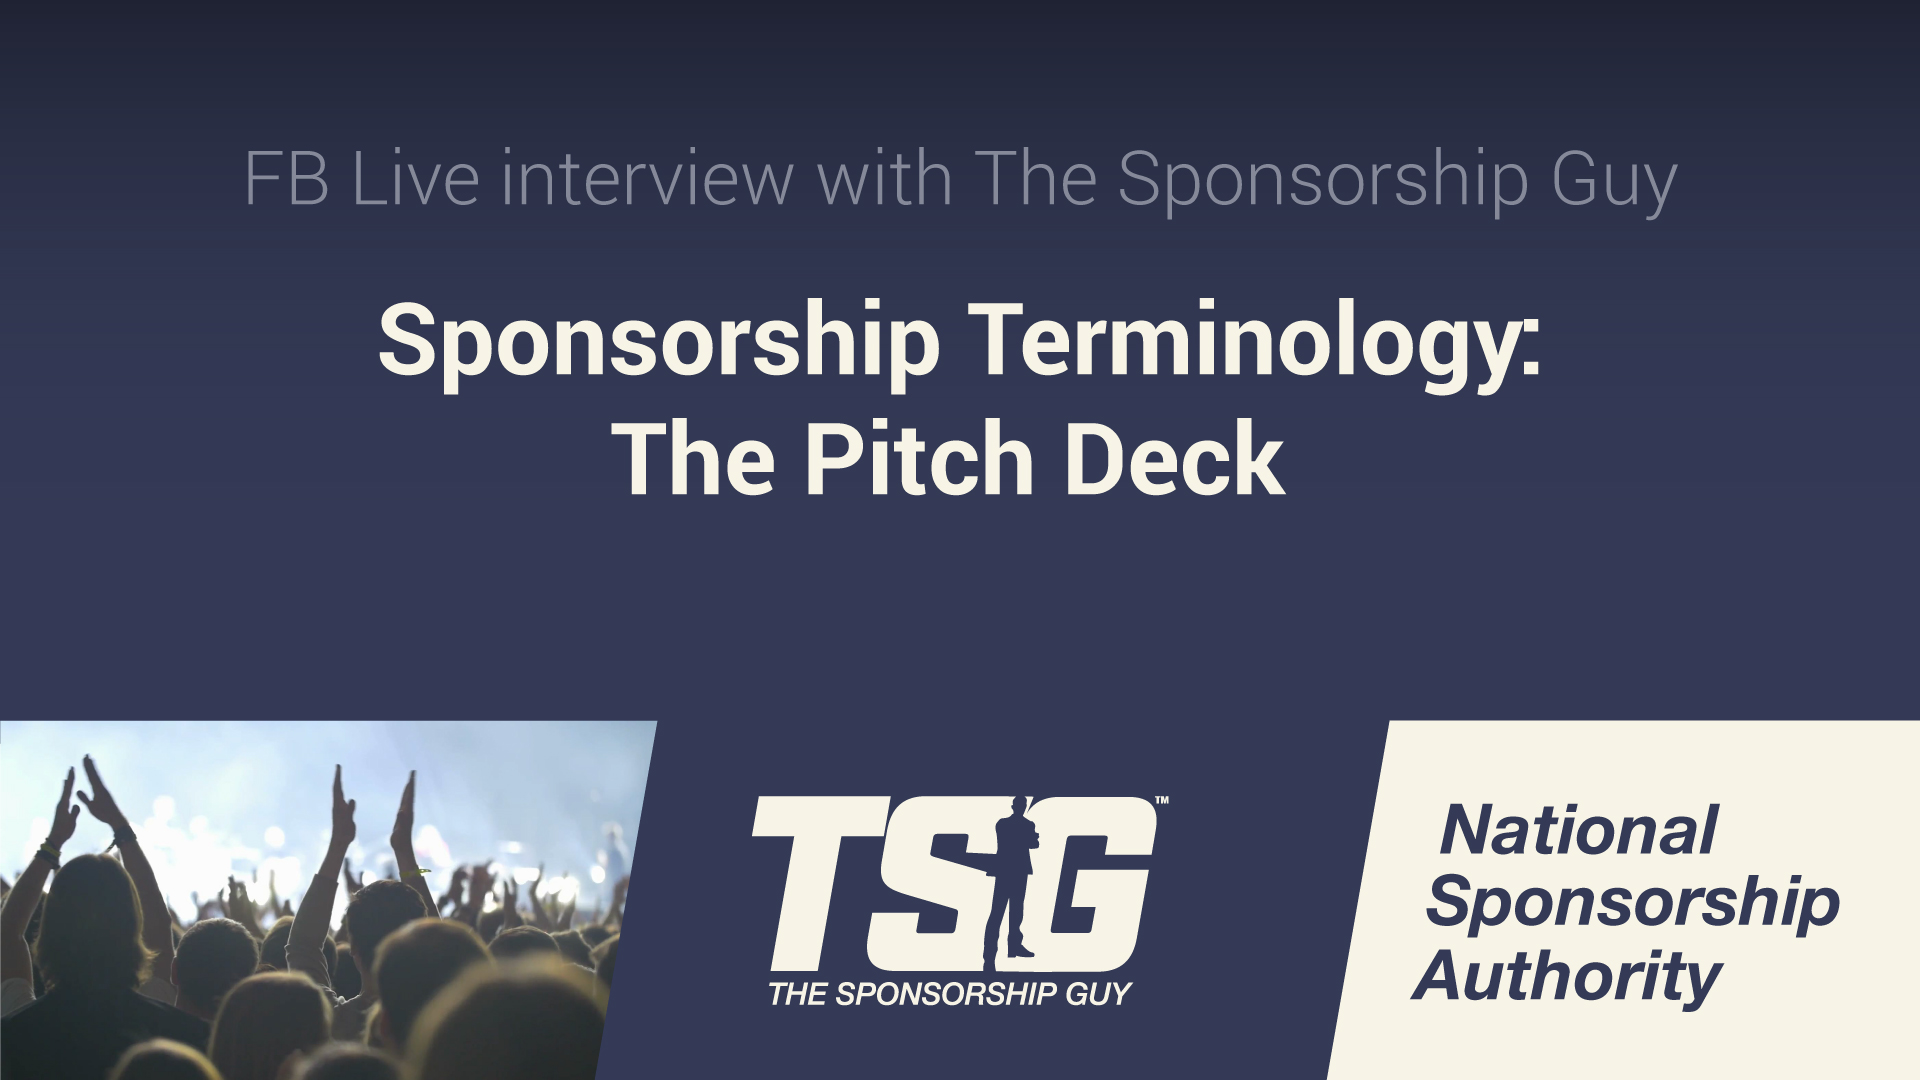 Sponsorship Terminology: The Pitch Deck